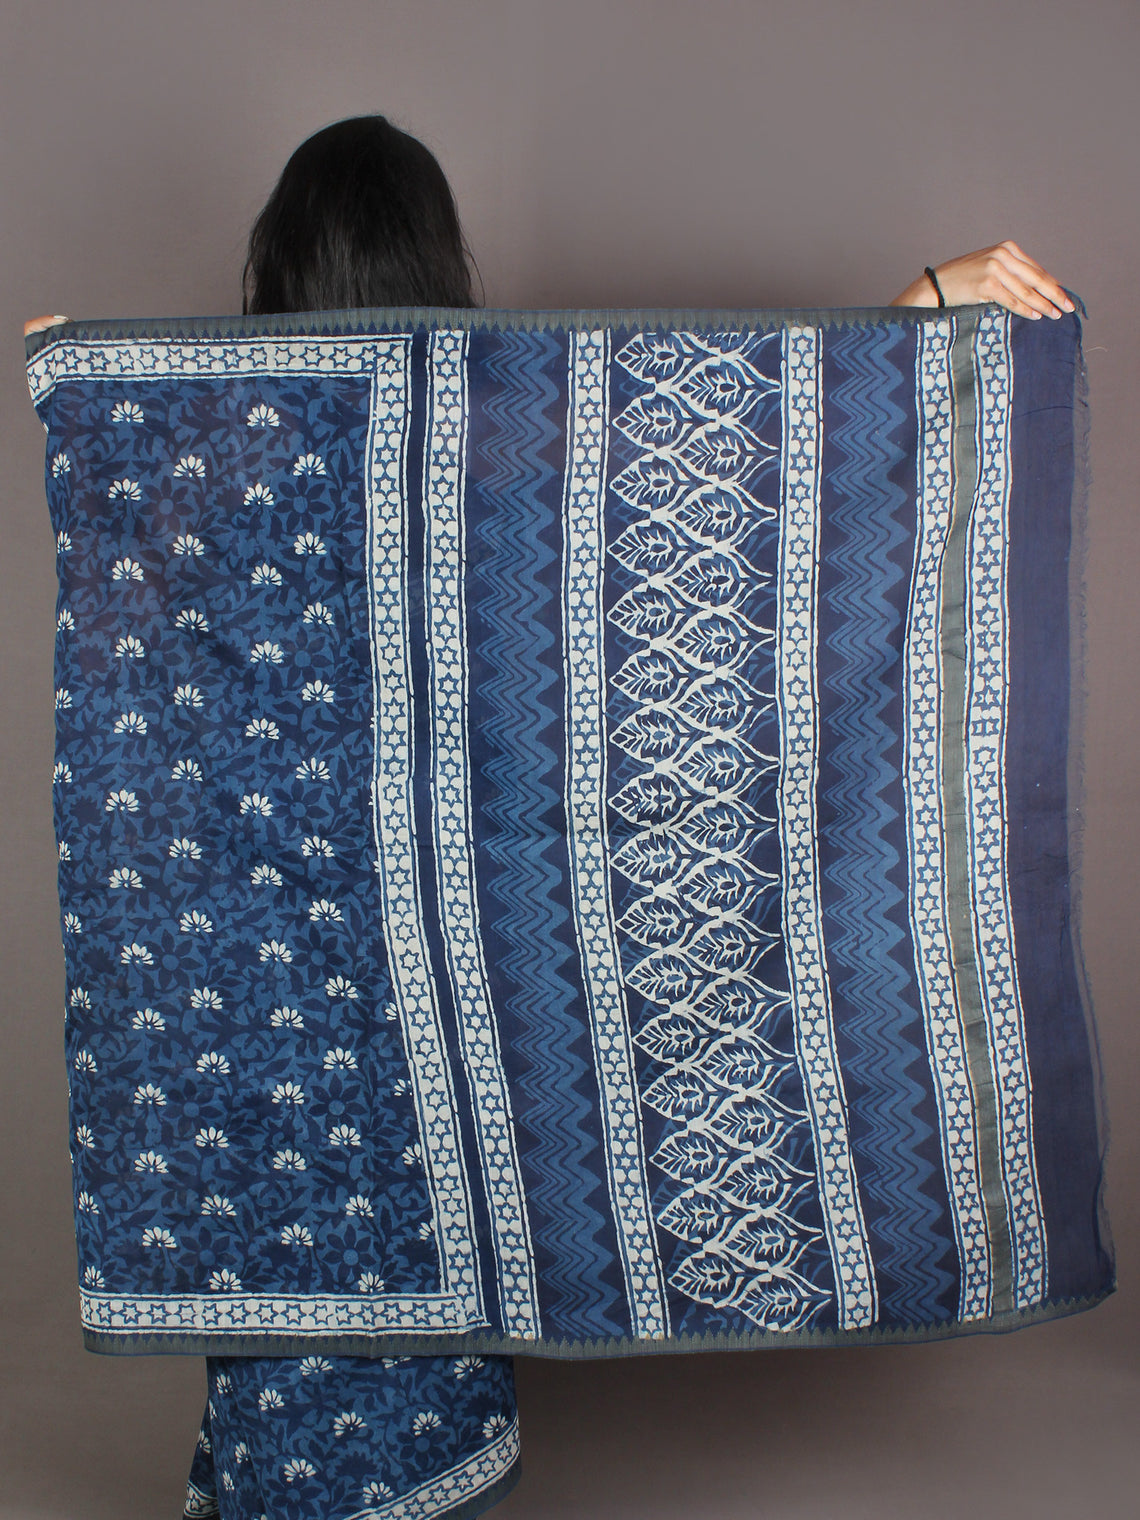 Indigo White Hand Block Printed in Natural Colors Chanderi Saree With Geecha Border - S03170968